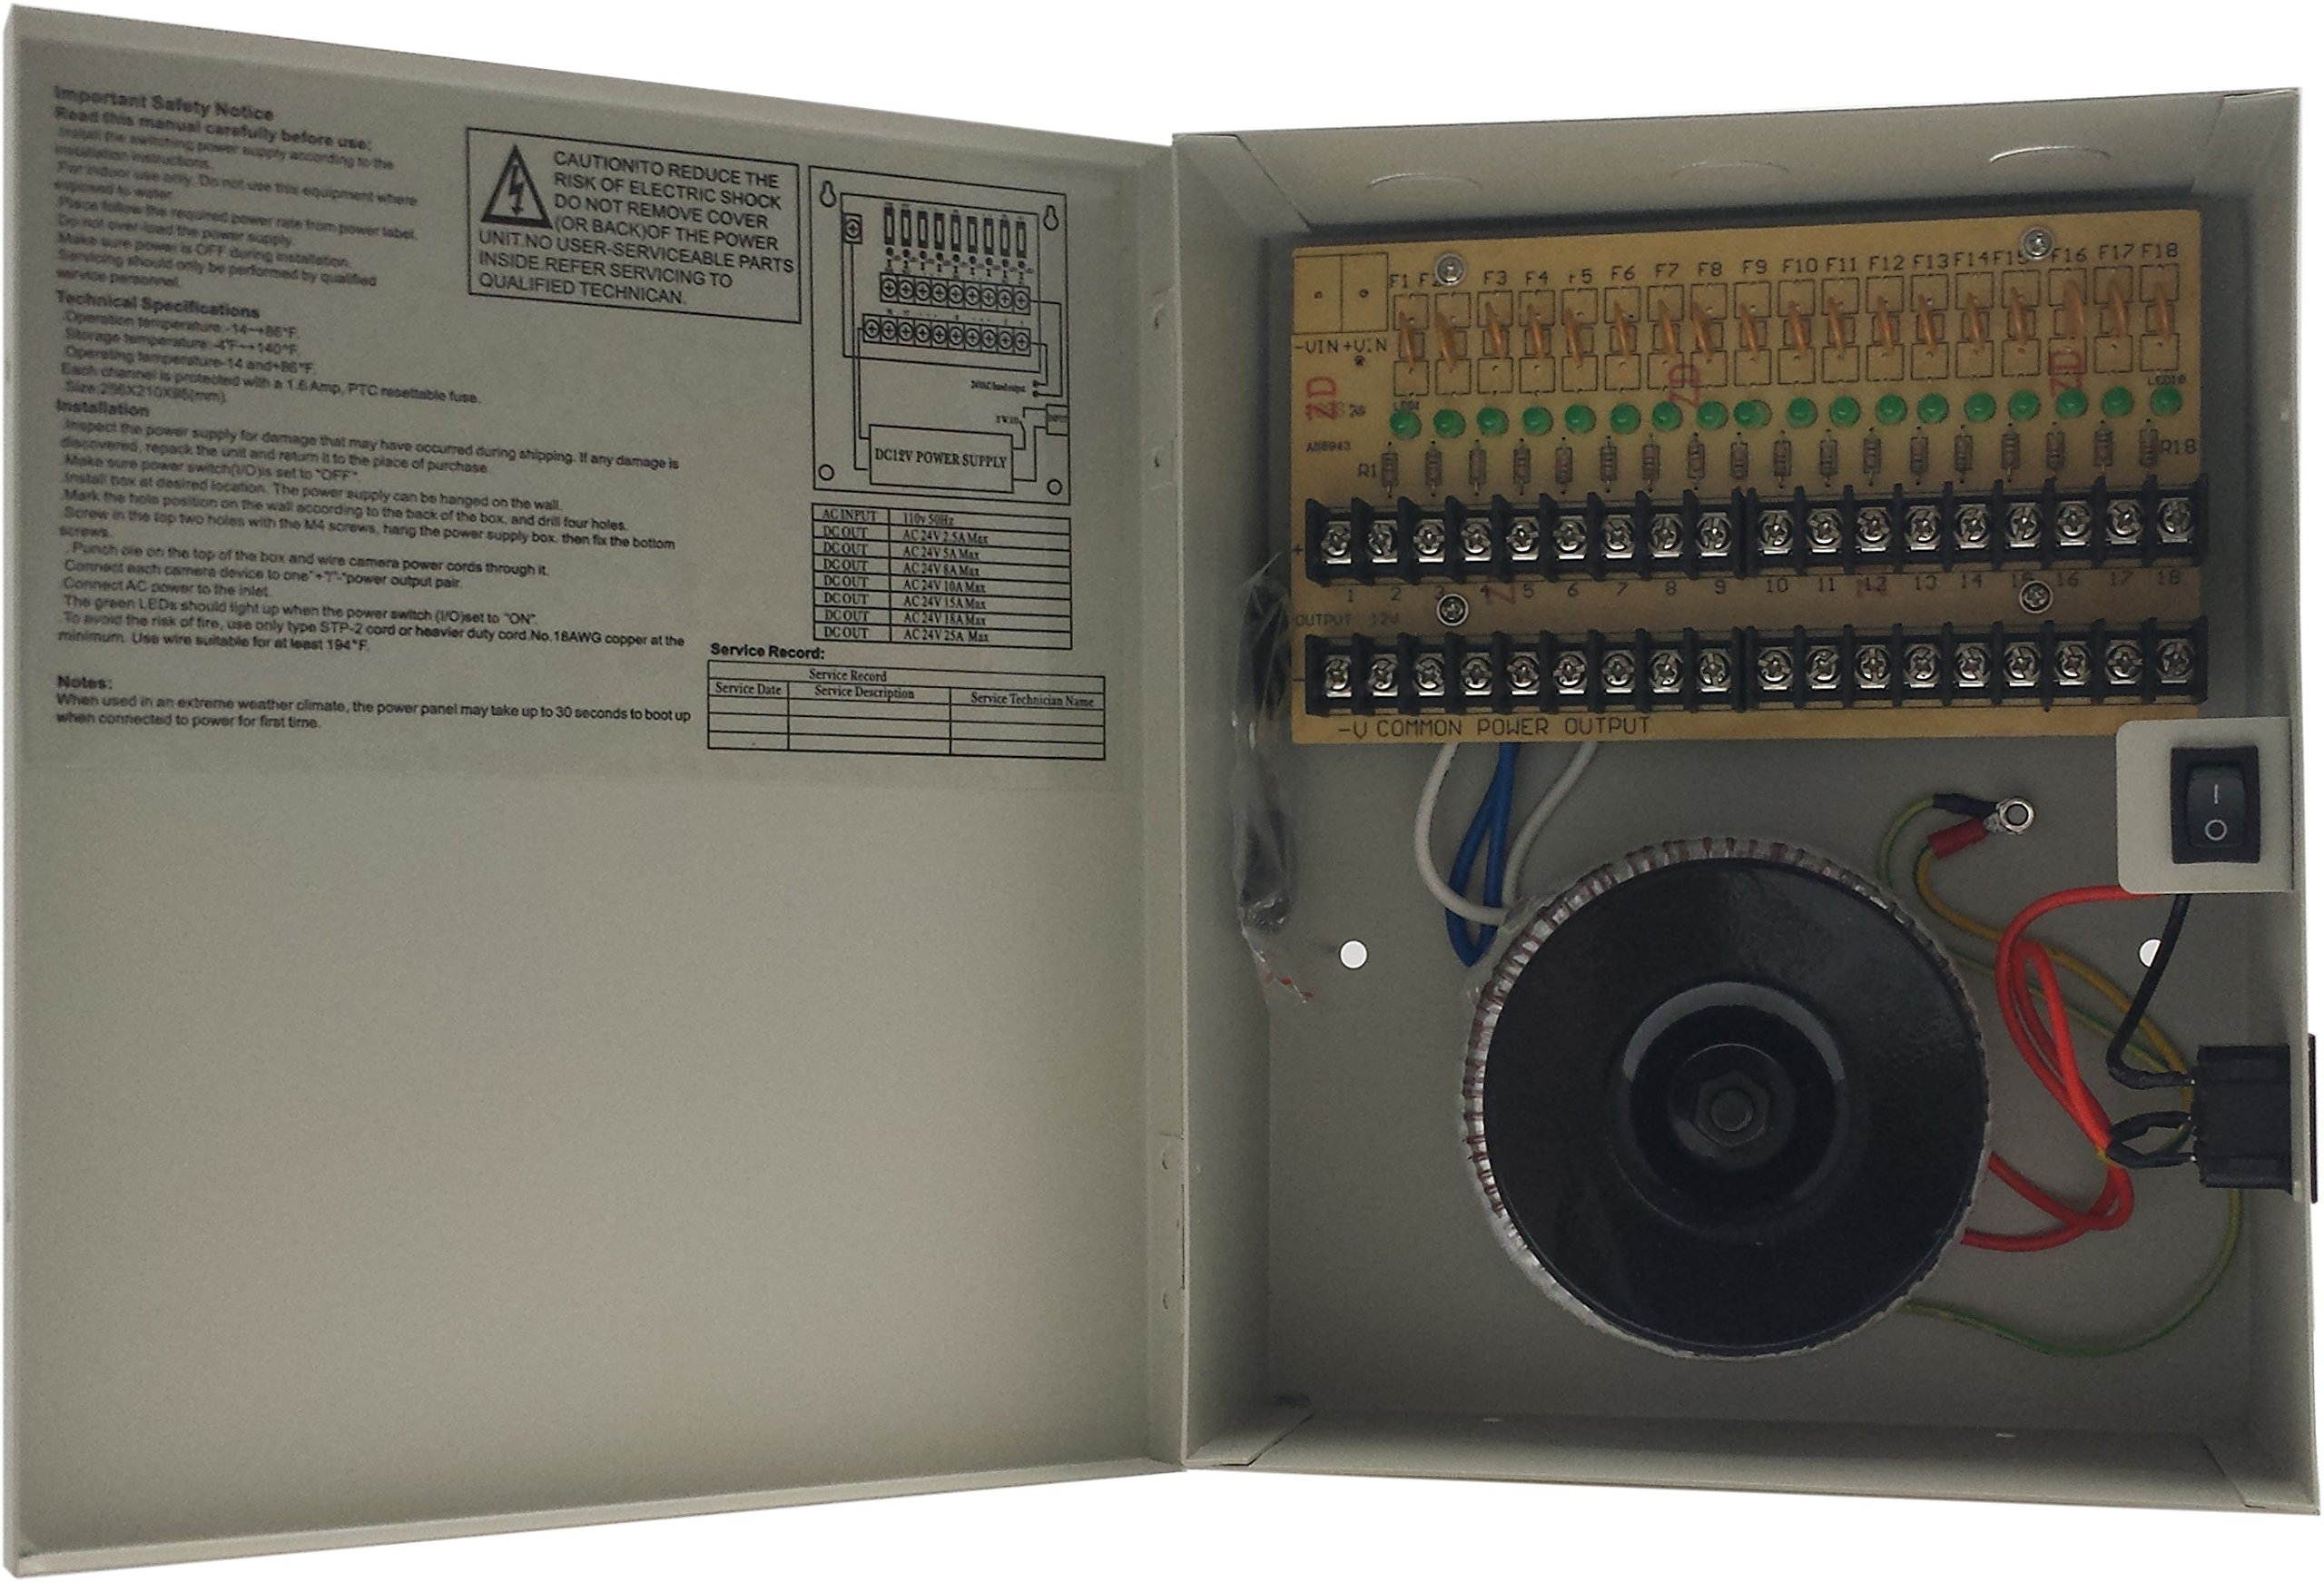 18 Ch 24v AC, 10 Amp CCTV Security Camera Distributed Power Supply with Individually (Smart)Fused Outputs